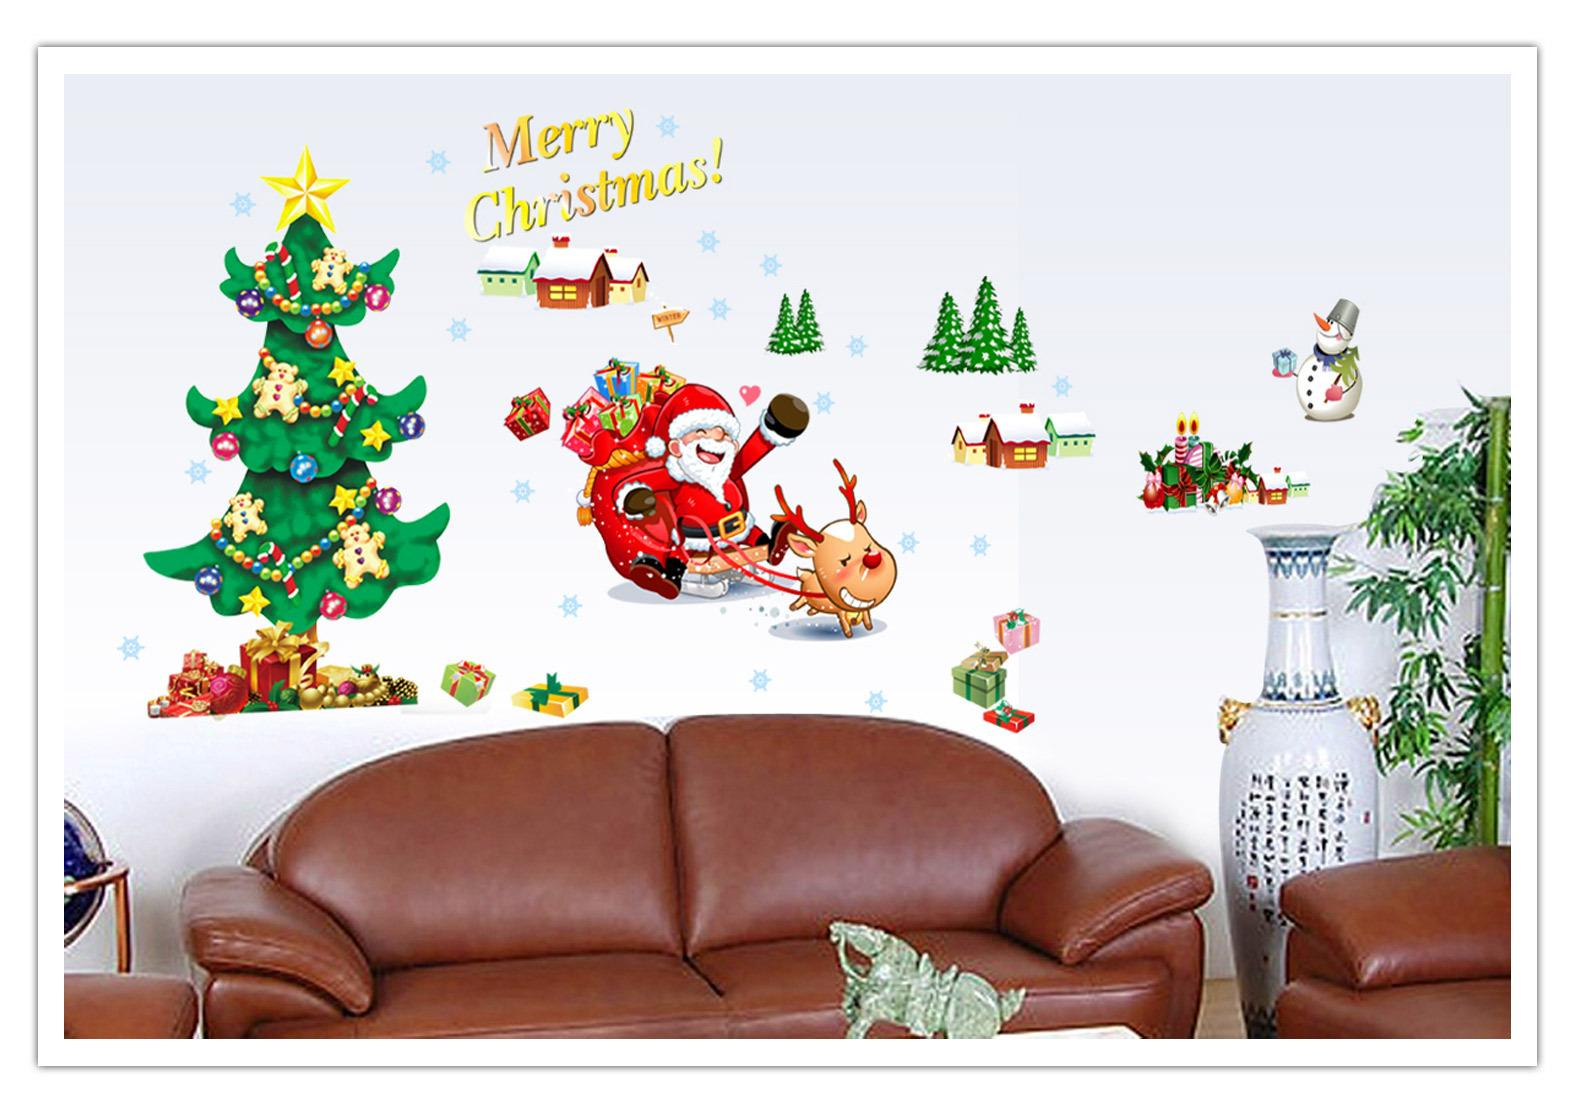 Merry Christmas Quote Wall Art Decal: Hot Sale Merry Christmas Xmas Tree Santa Claus Snowman